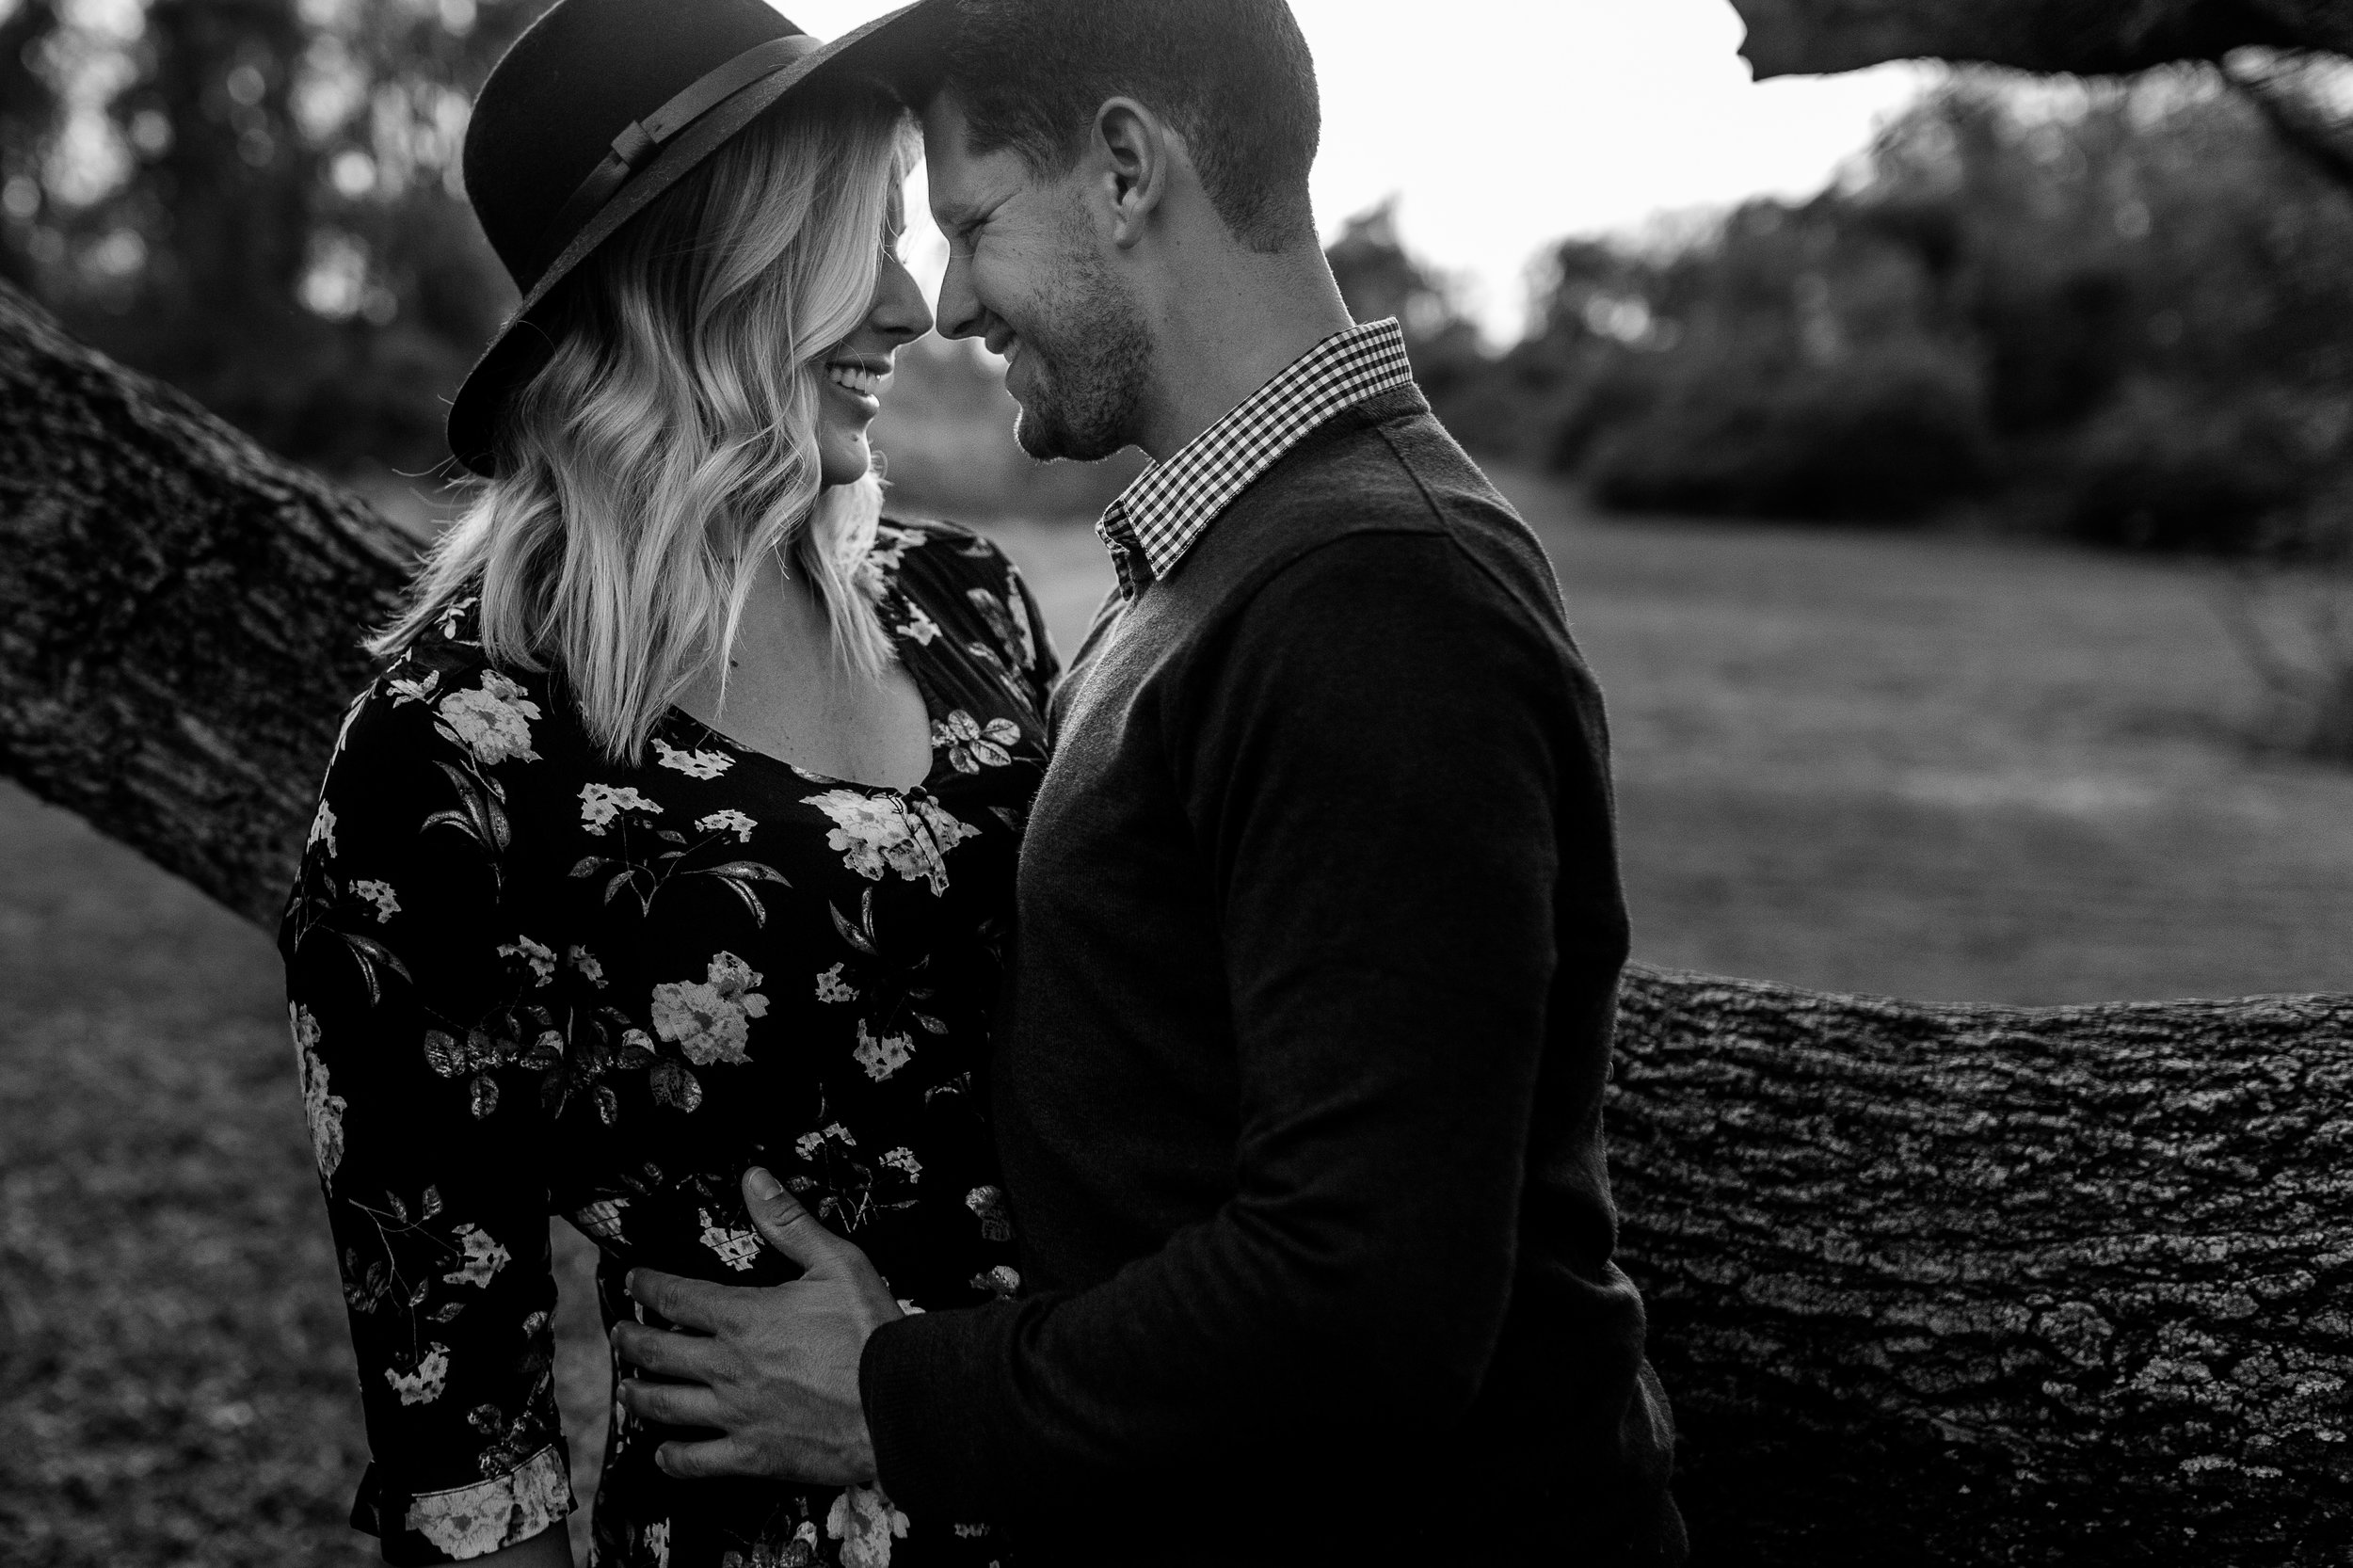 nicole-daacke-photography-carefree-bohemian-lancaster-pa-pennsylvania-engagement-photos-engagement-session-golden-sunset-adventure-session-in-lancaster-pa-lancaster-pa-outdoor-wedding-photographer-21.jpg